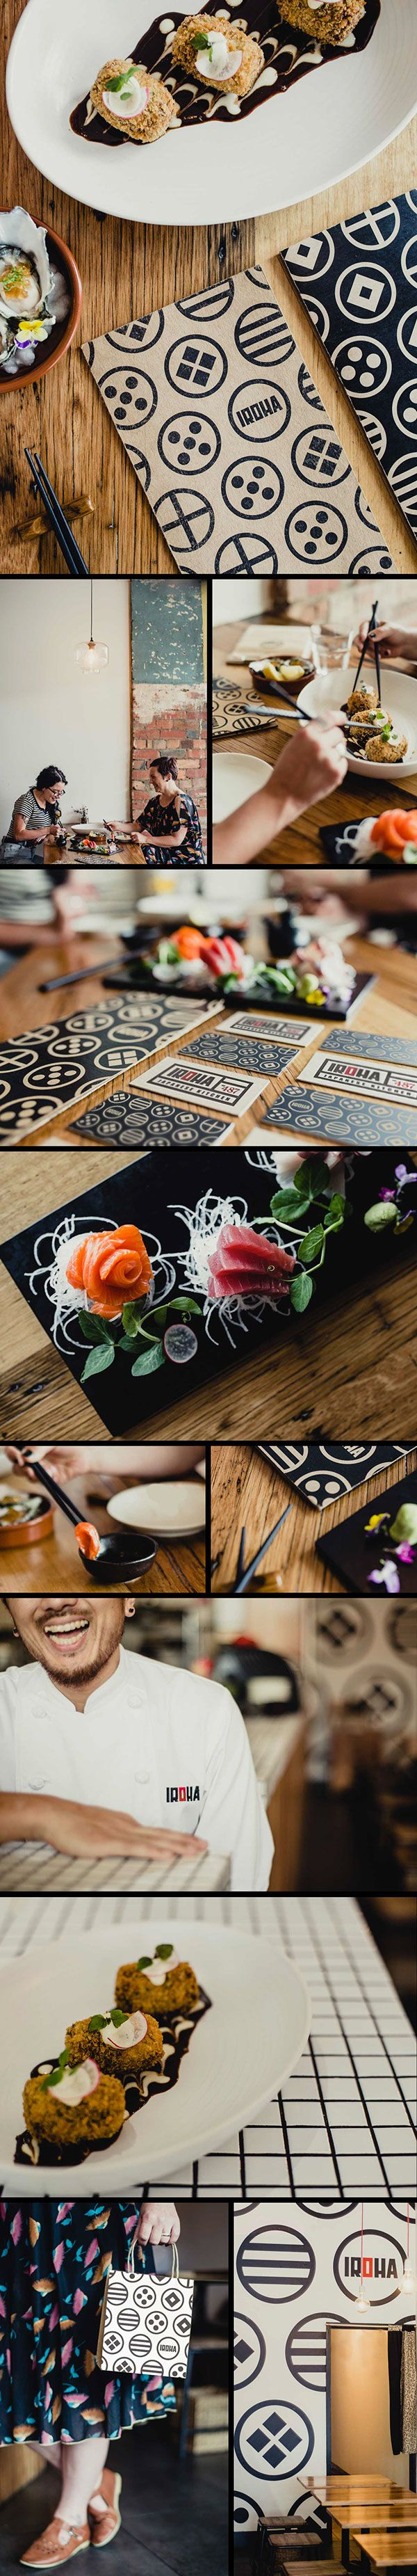 IROHA JAPANESE KITCHEN on Behance